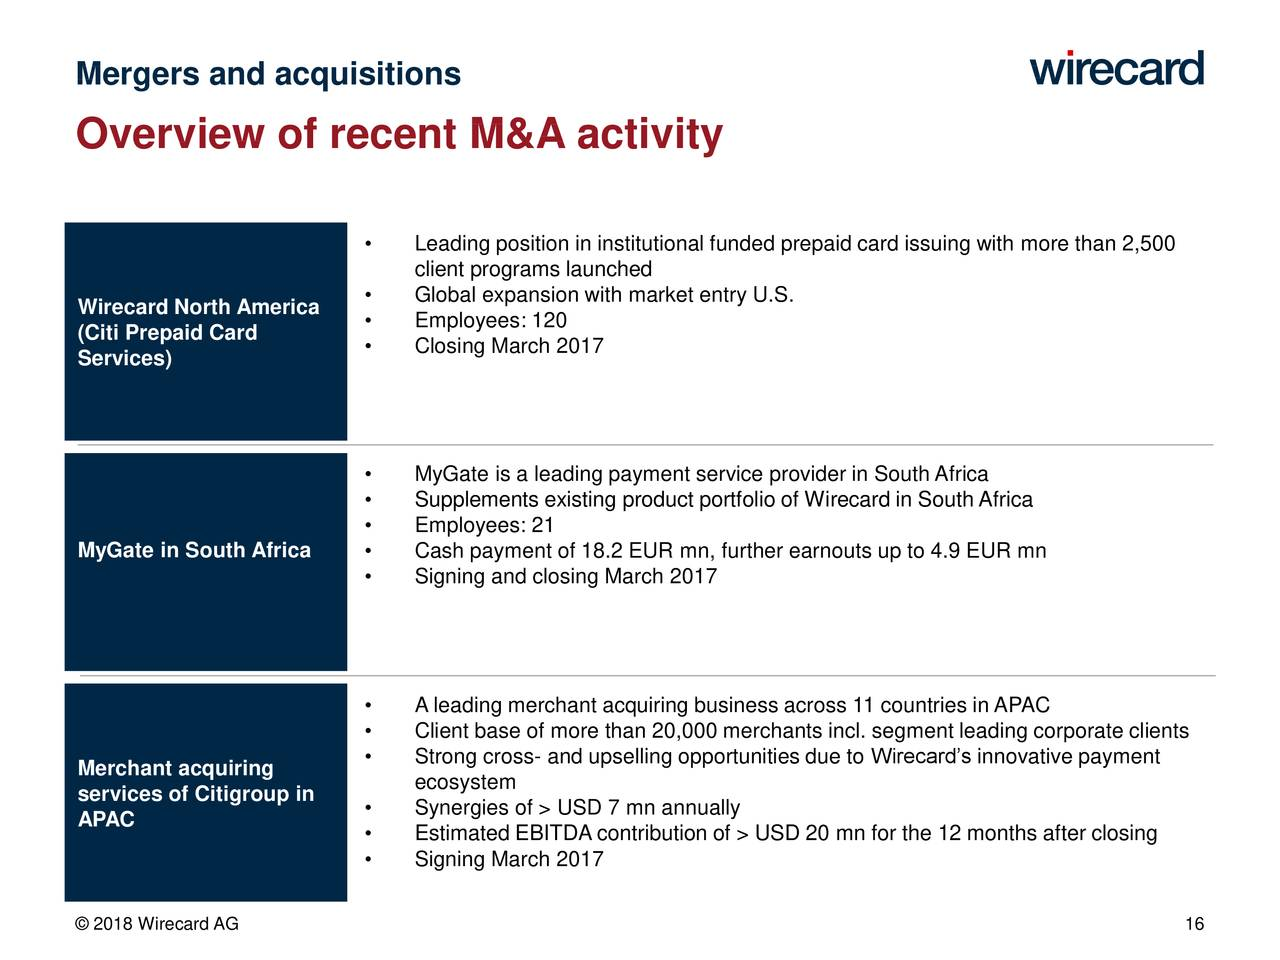 Citi Prepaid Limited Brands >> Wirecard Ag Adr 2018 Q1 Results Earnings Call Slides Wirecard